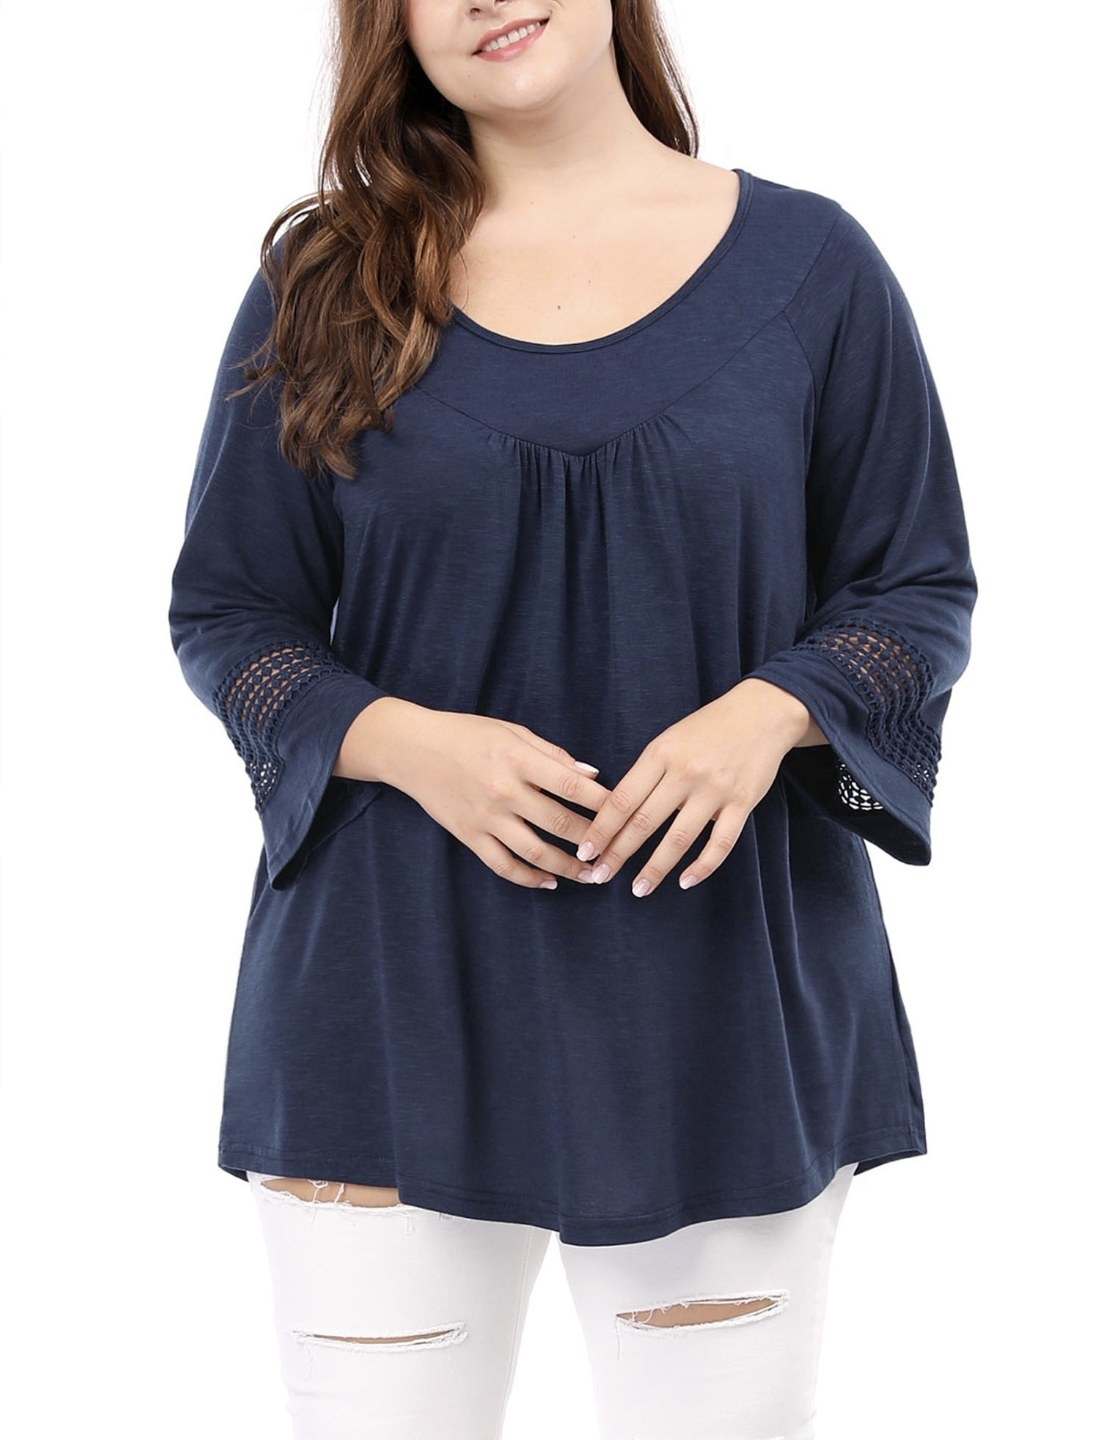 Model in the navy blue long sleeve top with lace sleeve trim